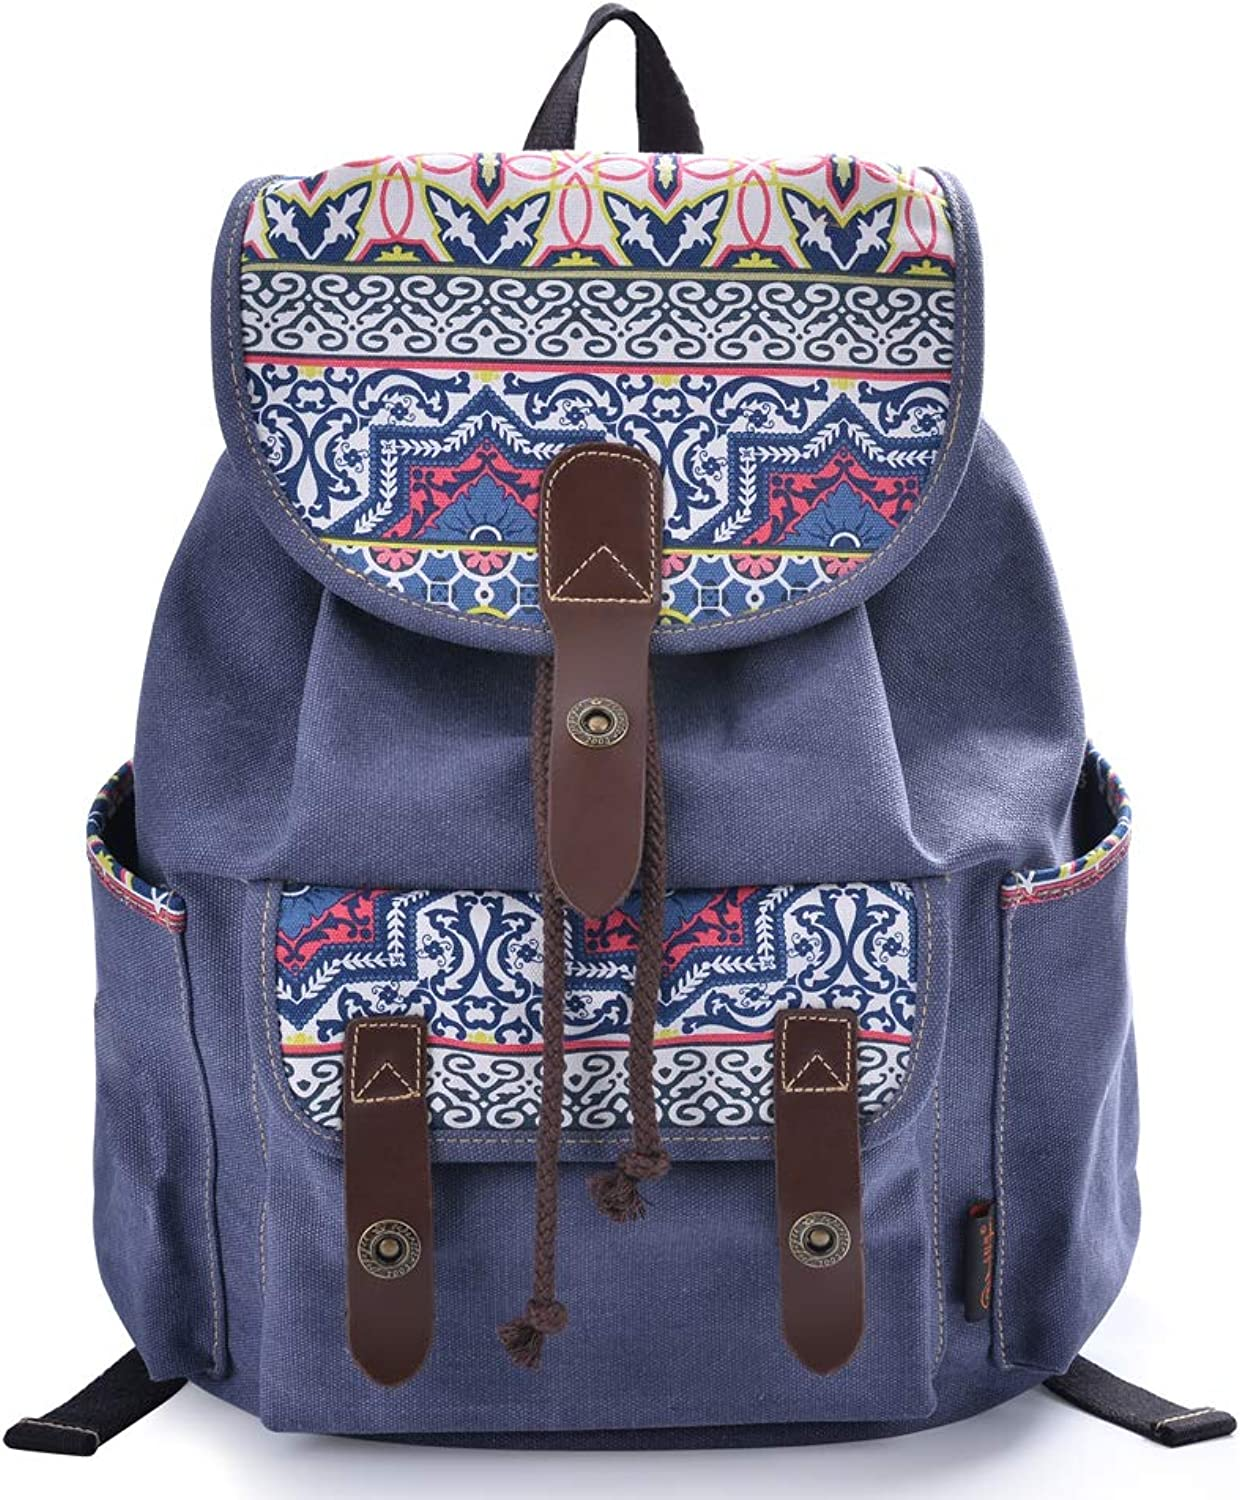 Lt Tribe Girls Casual Canvas Backpack Floral College Backpack Laptop Daypack blueee G00137